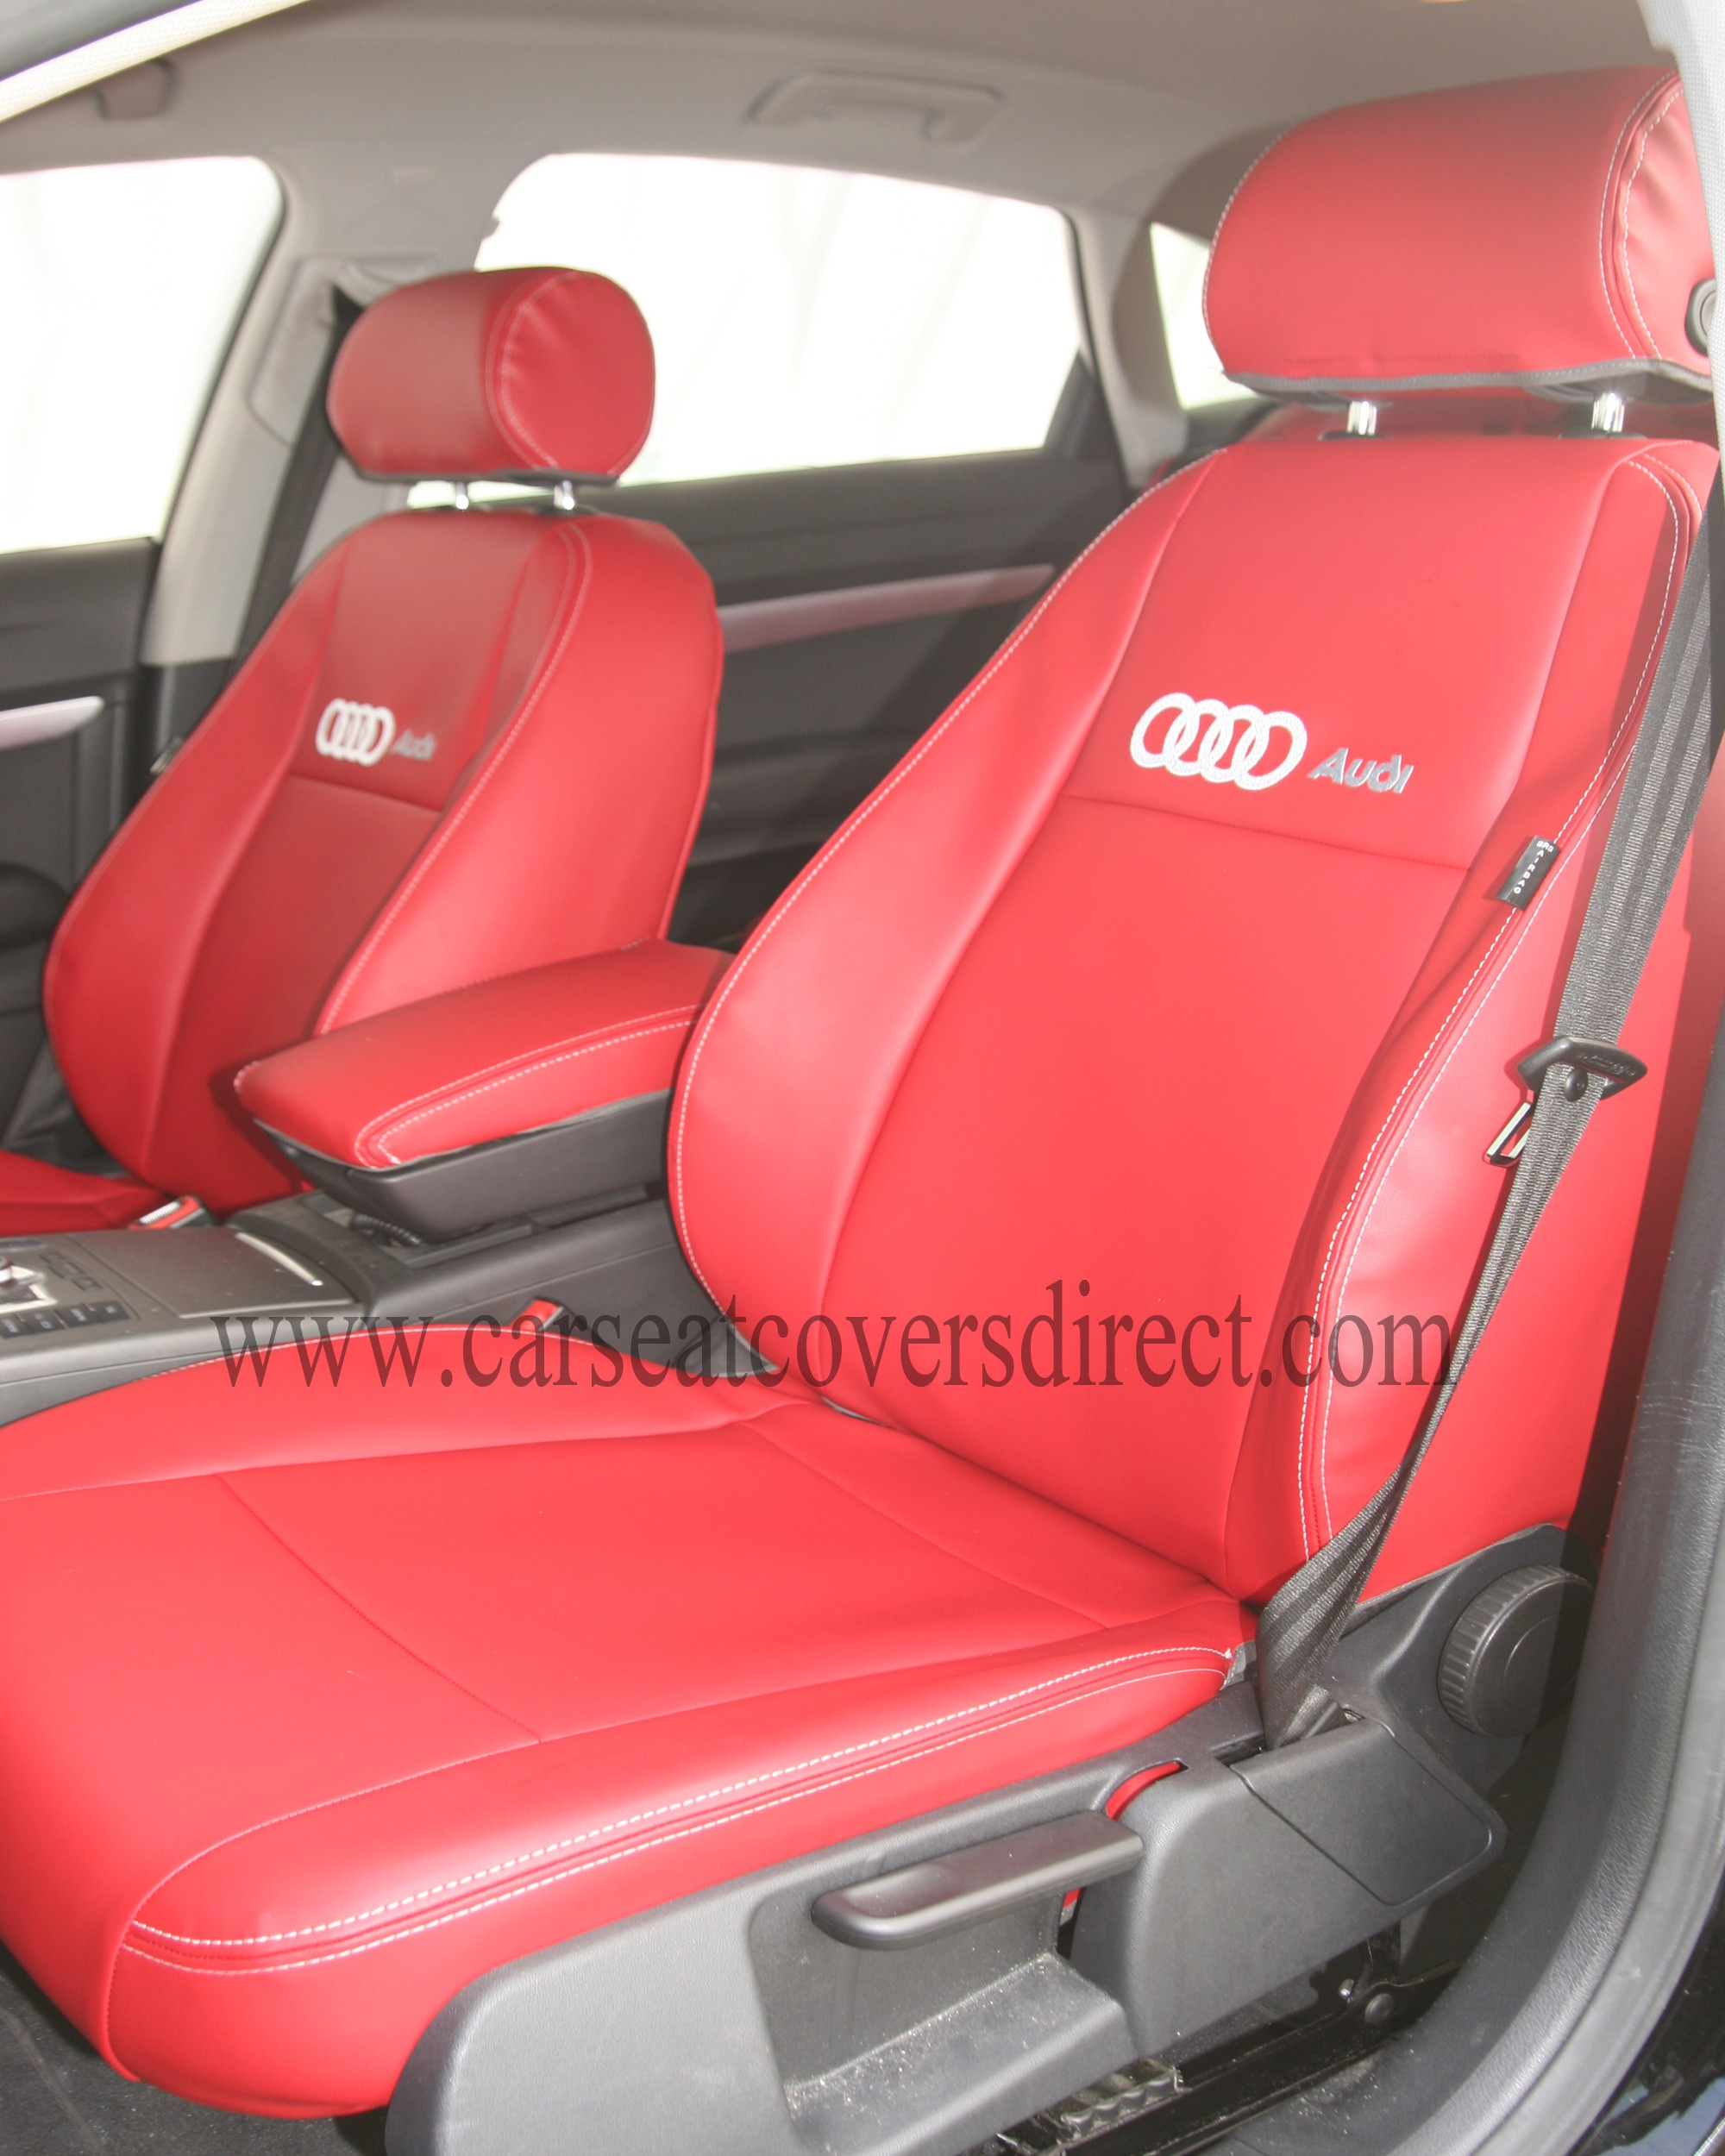 AUDI A6 red seat covers 3RD GEN